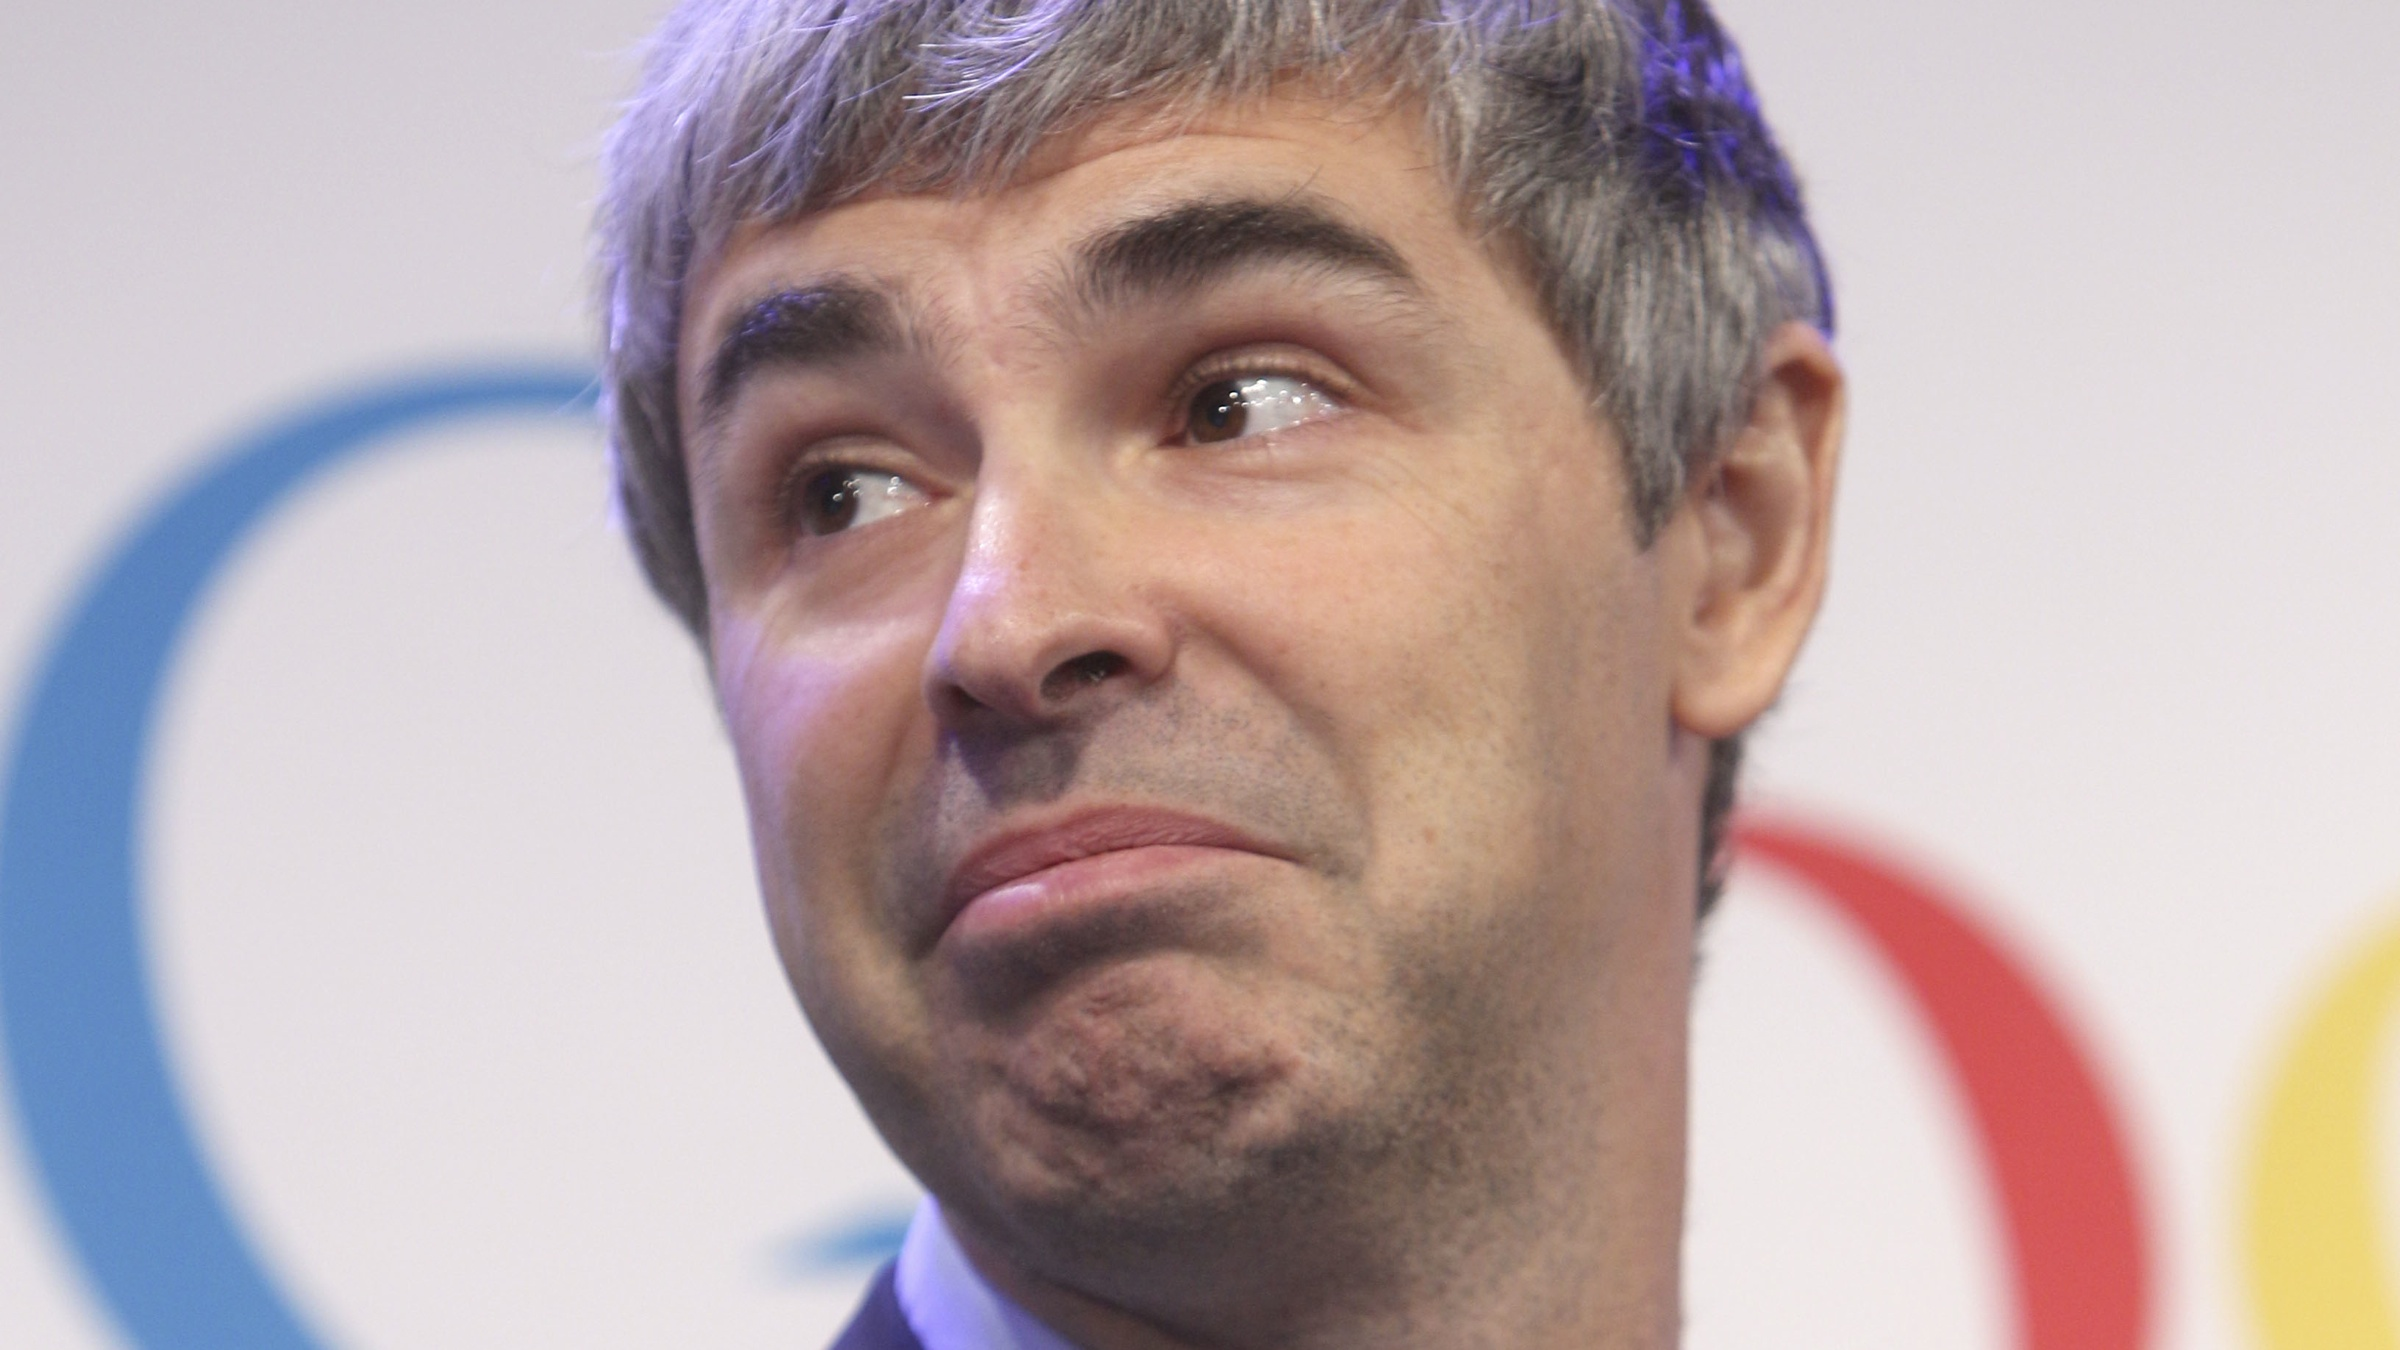 Google CEO Larry Page takes questions from the audience during a news conference at the Google offices in New York, Monday, May 21, 2012.  Google's New York City headquarters is set to become the temporary home of the city's new applied sciences campus.(AP Photo/Seth Wenig)